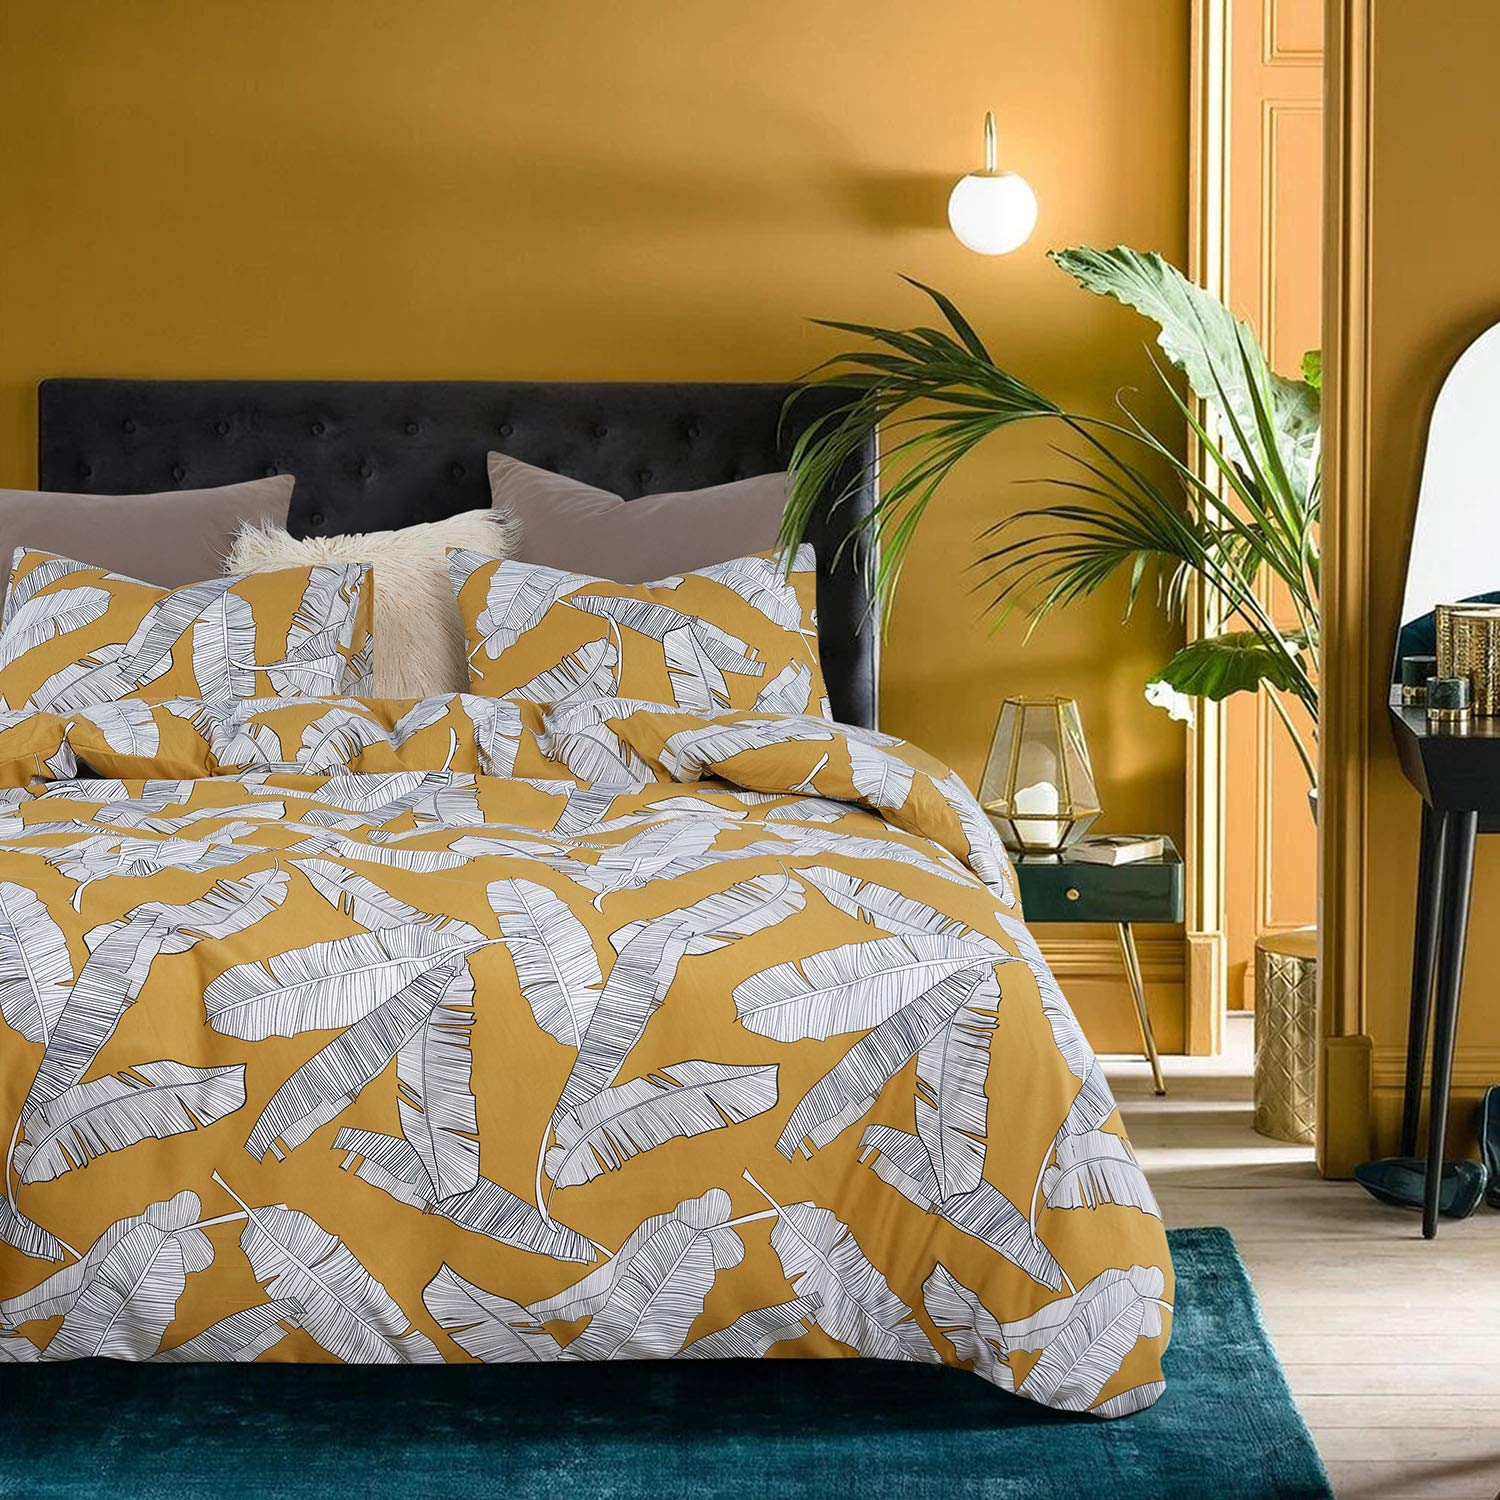 Wake In Cloud - Yellow Comforter Set, Banana Tree Leaves Black and White Drawing Pattern Printed, Soft Microfiber Bedding